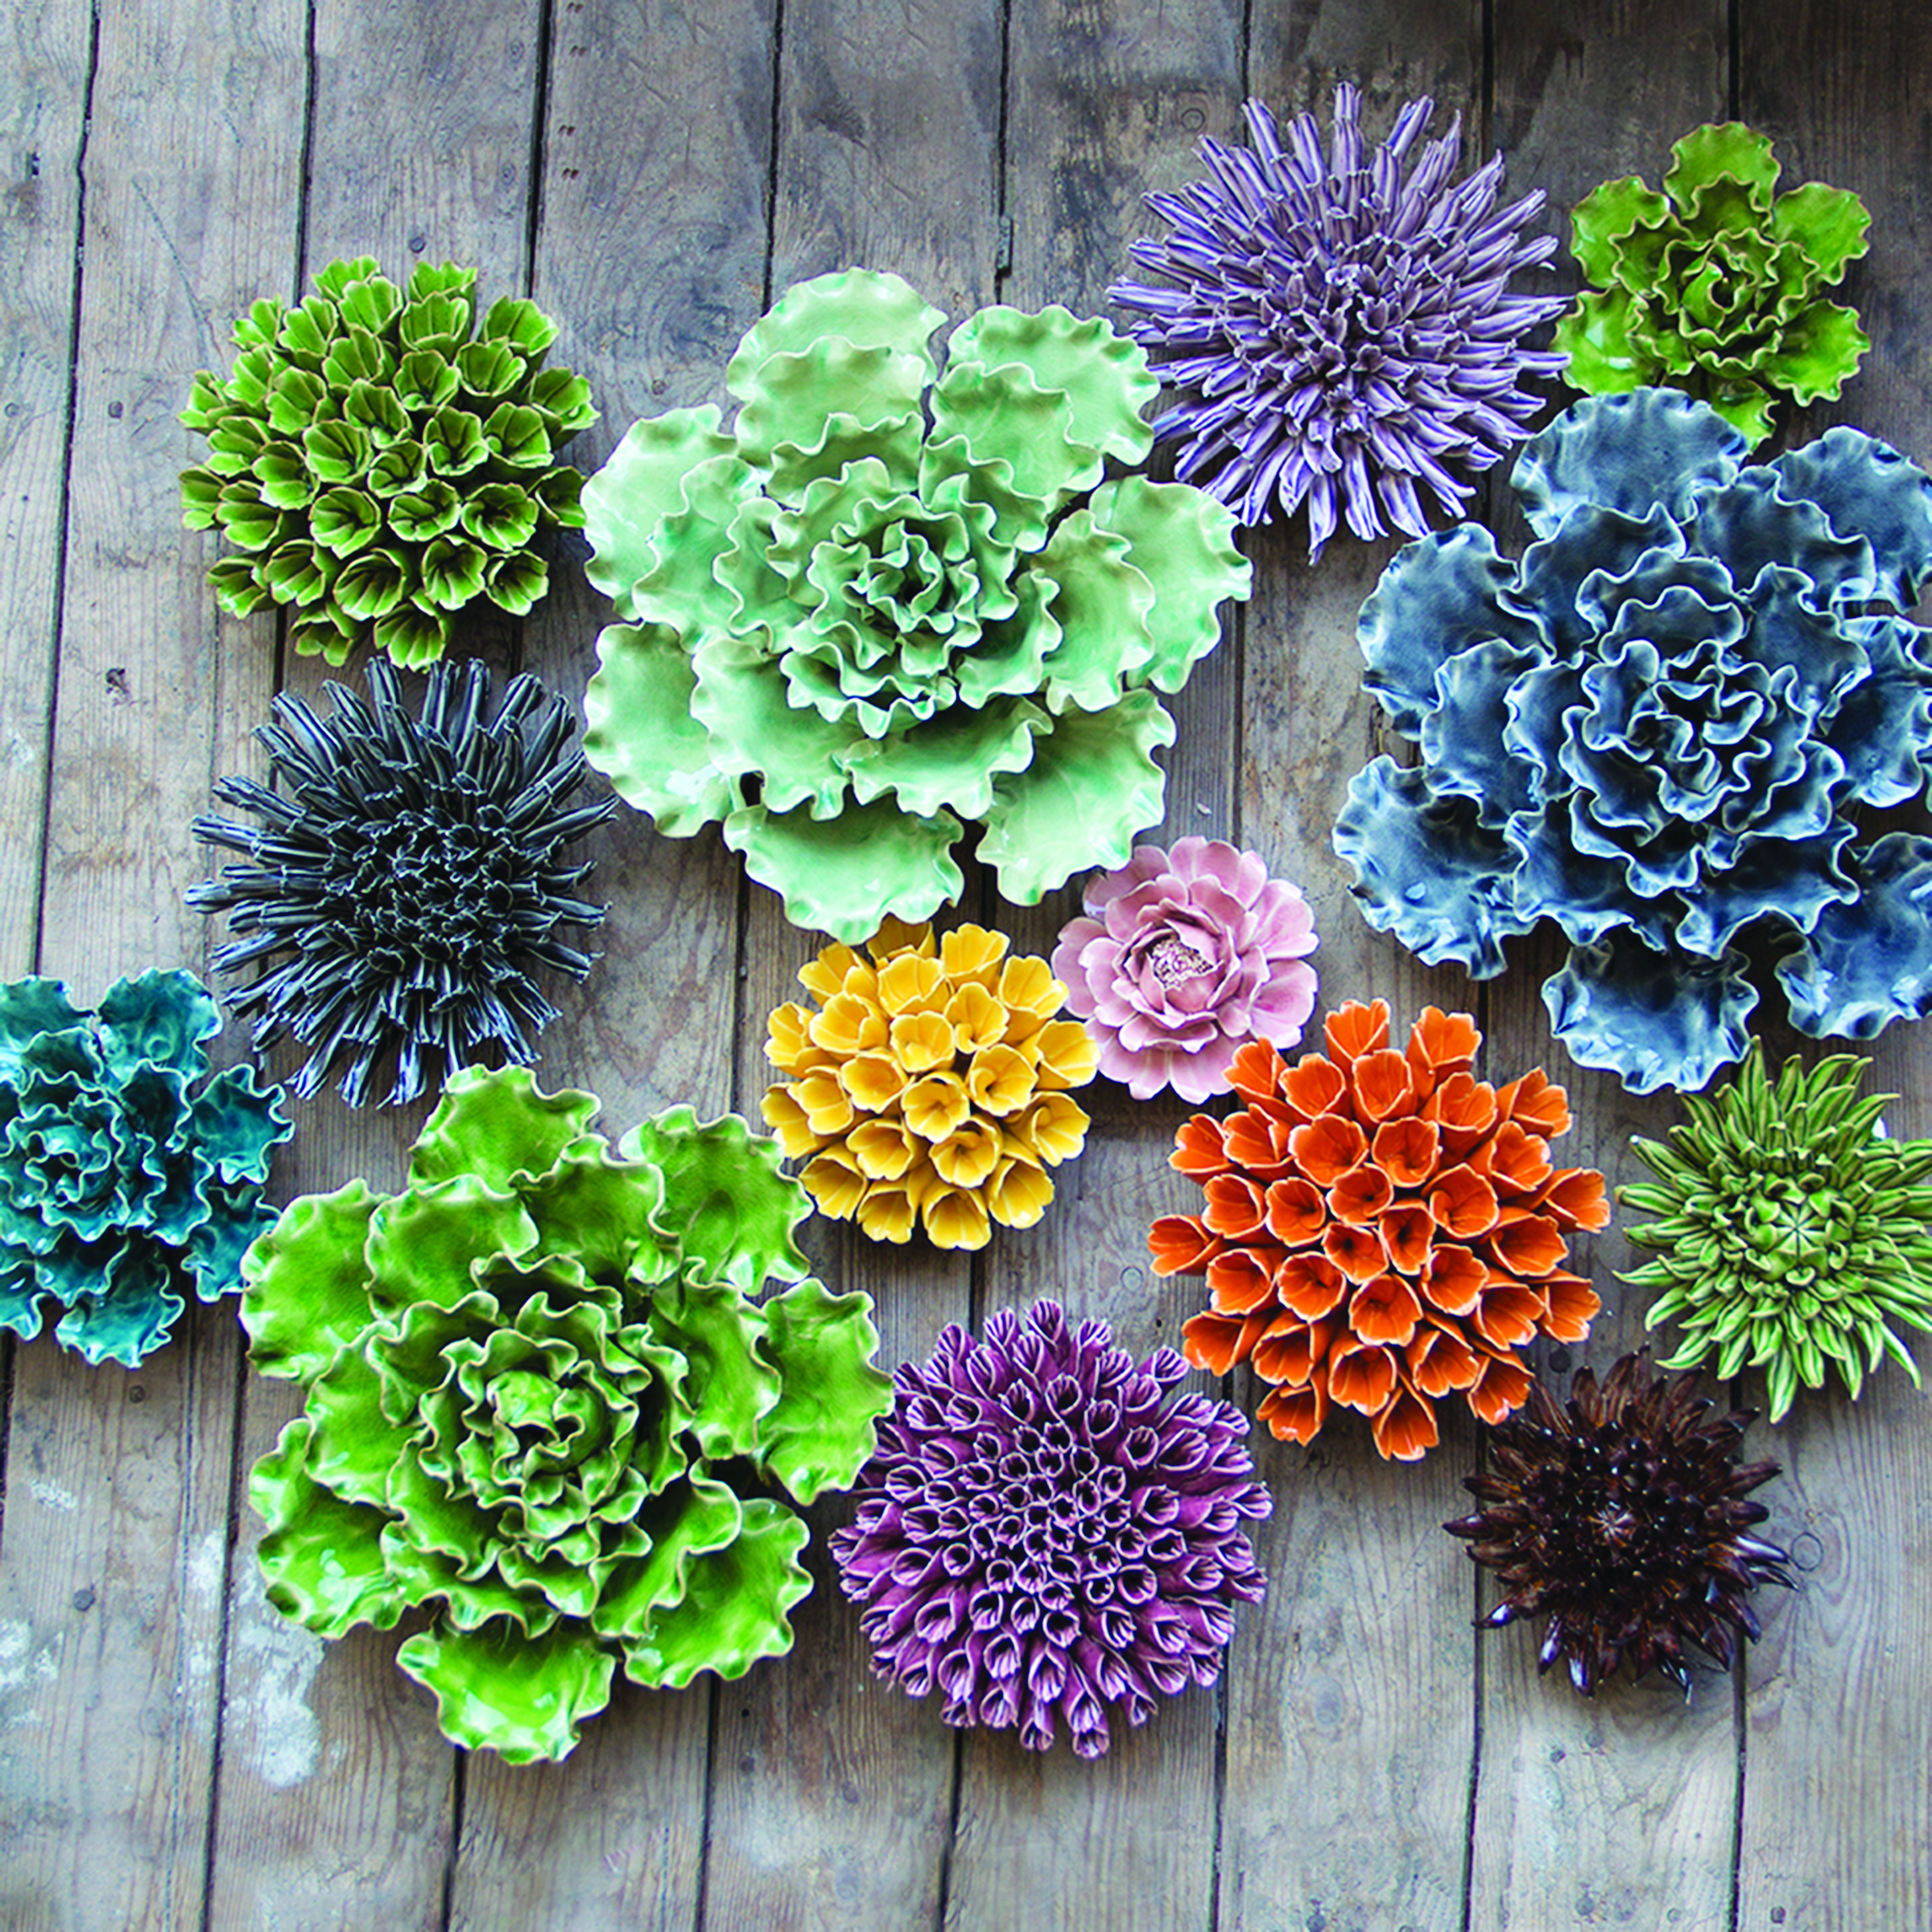 #2: Ceramic Succulents - Choose from a variety of ceramic succulents perfect for decorating any wall or table.